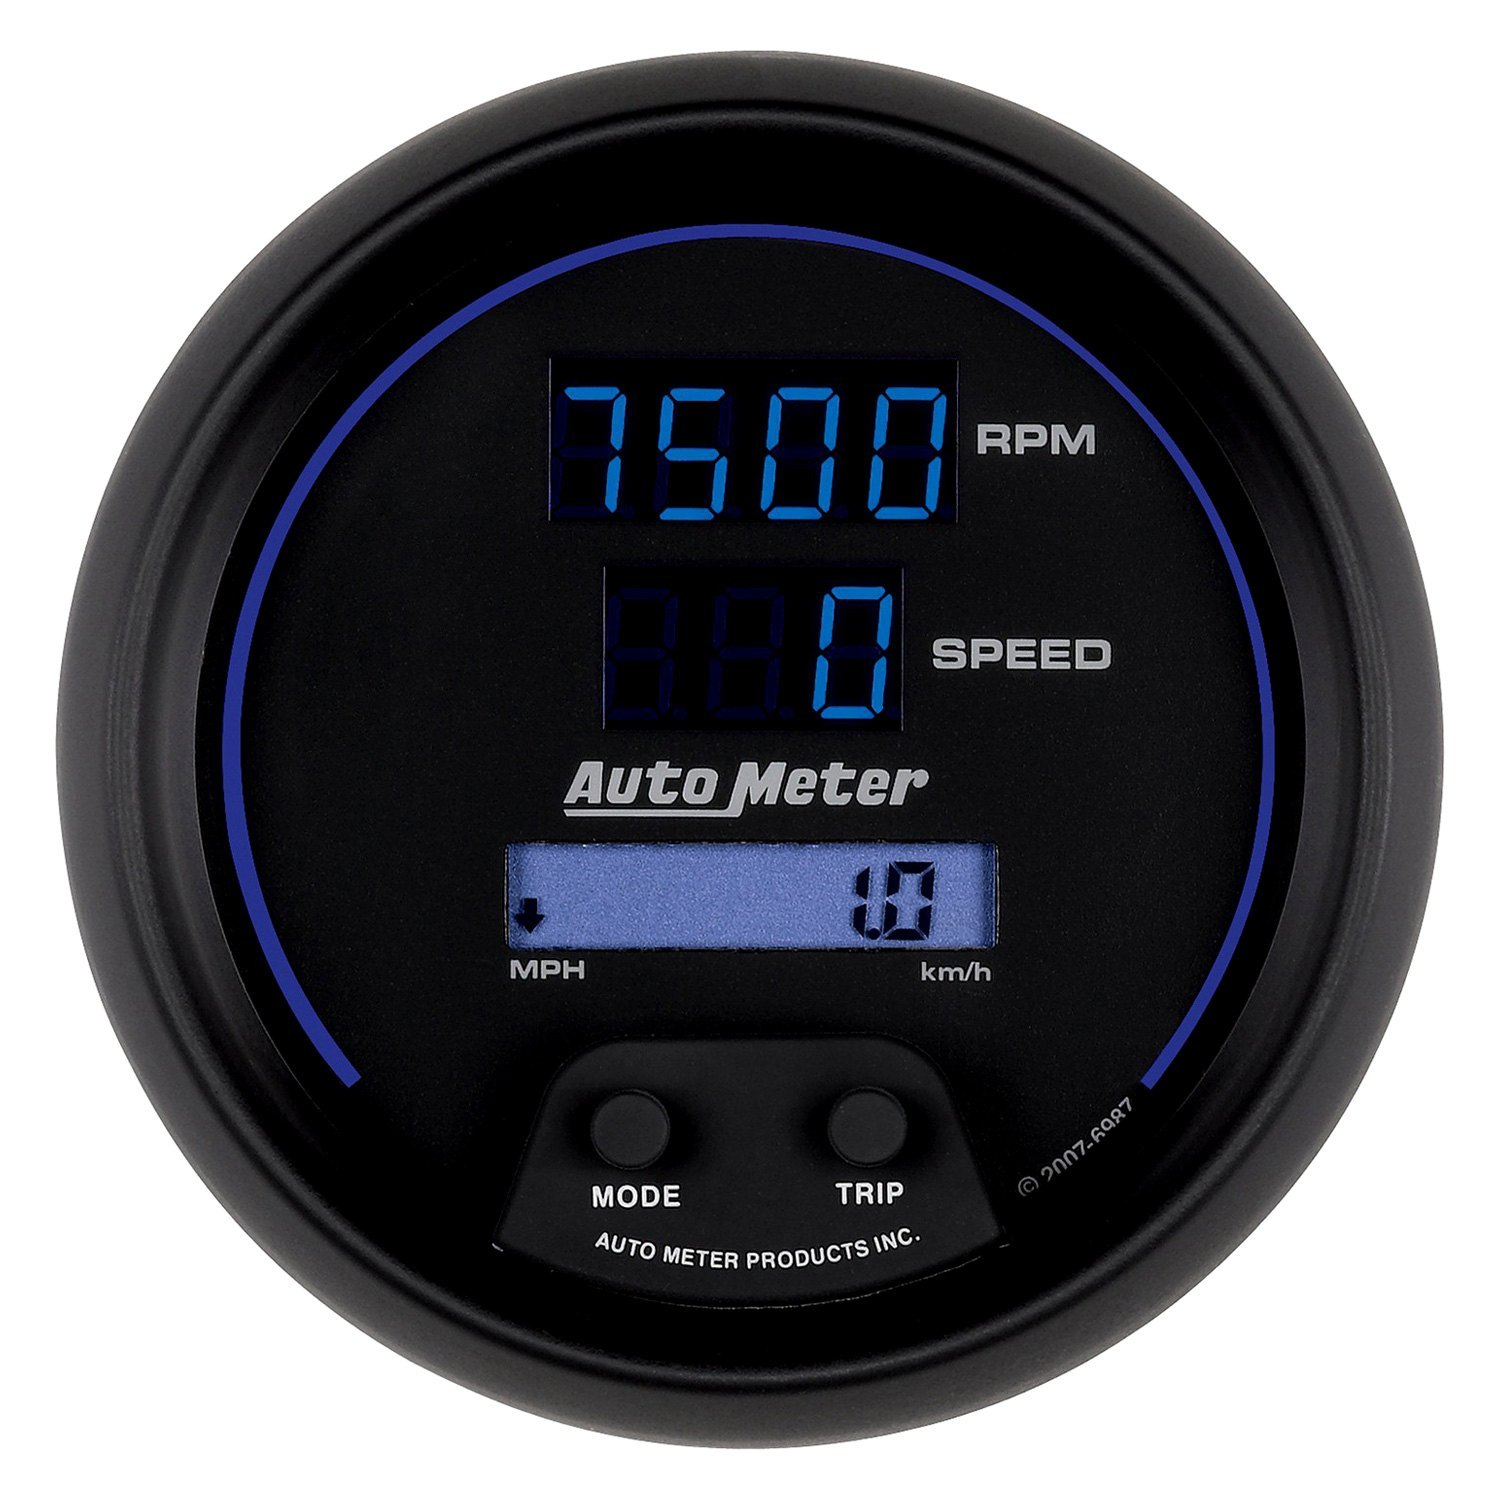 Electronic Gauges For Cars : Auto meter cobalt digital™ speedometer tachometer